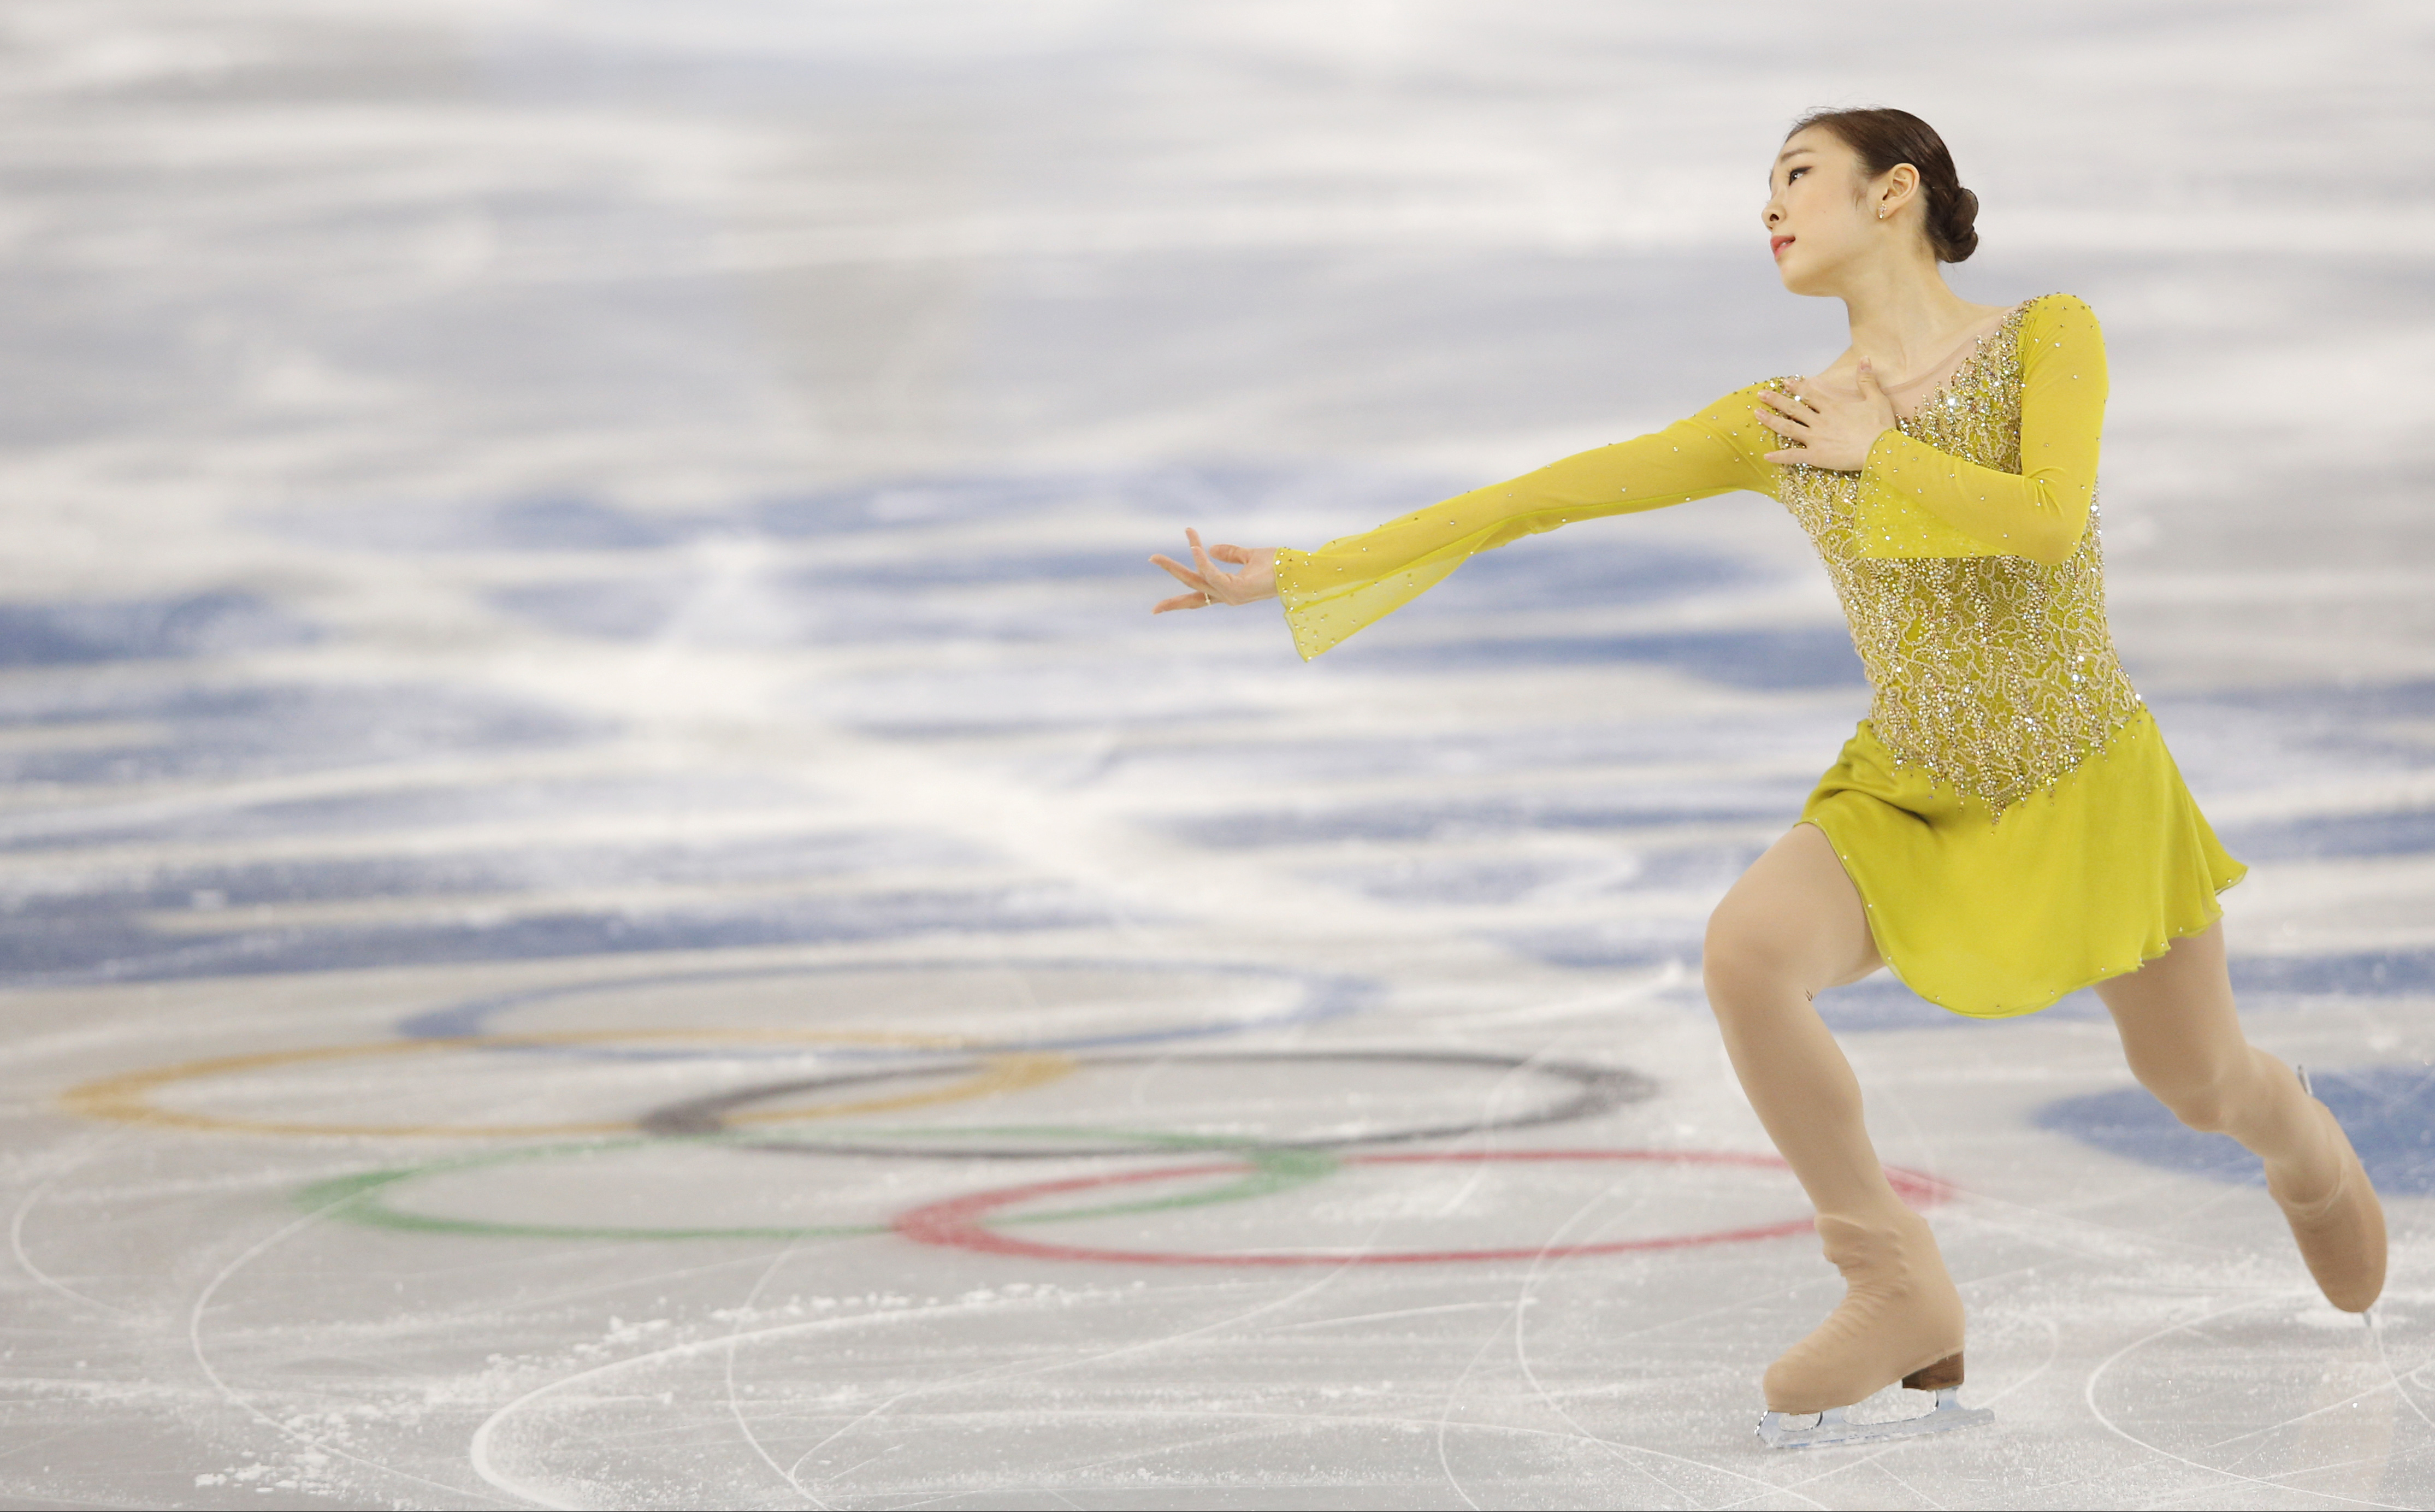 Yuna Kim of South Korea competes in the women's short program figure skating competition at the Iceberg Skating Palace during the 2014 Winter Olympics, Wednesday, Feb. 19, 2014, in Sochi, Russia. (AP Photo/Vadim Ghirda)